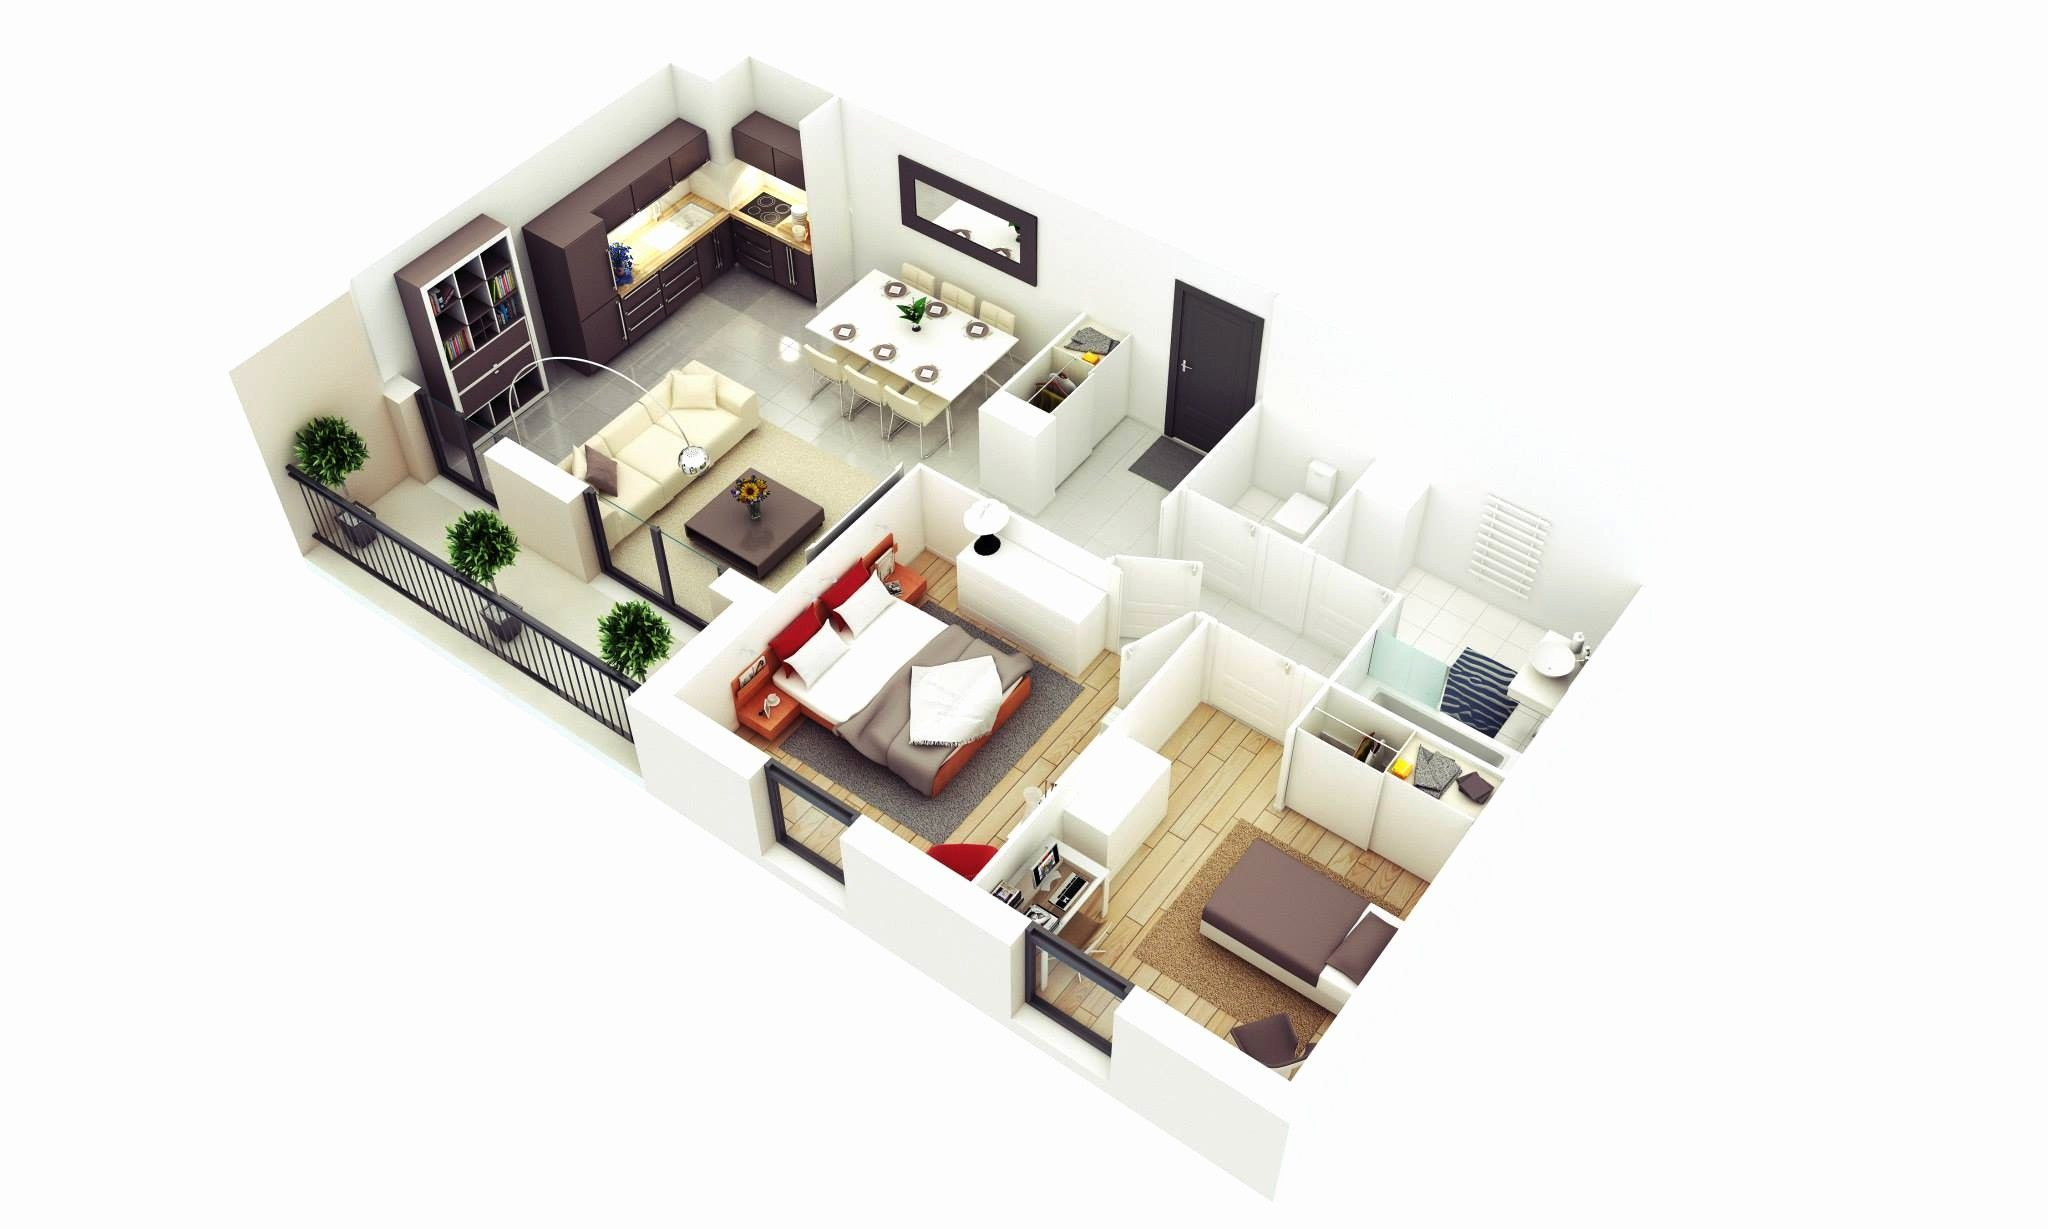 Beautiful Image Of Small Apartment Plans 2 Bedroom Small House Design Small Apartment Plans Home Design Plans